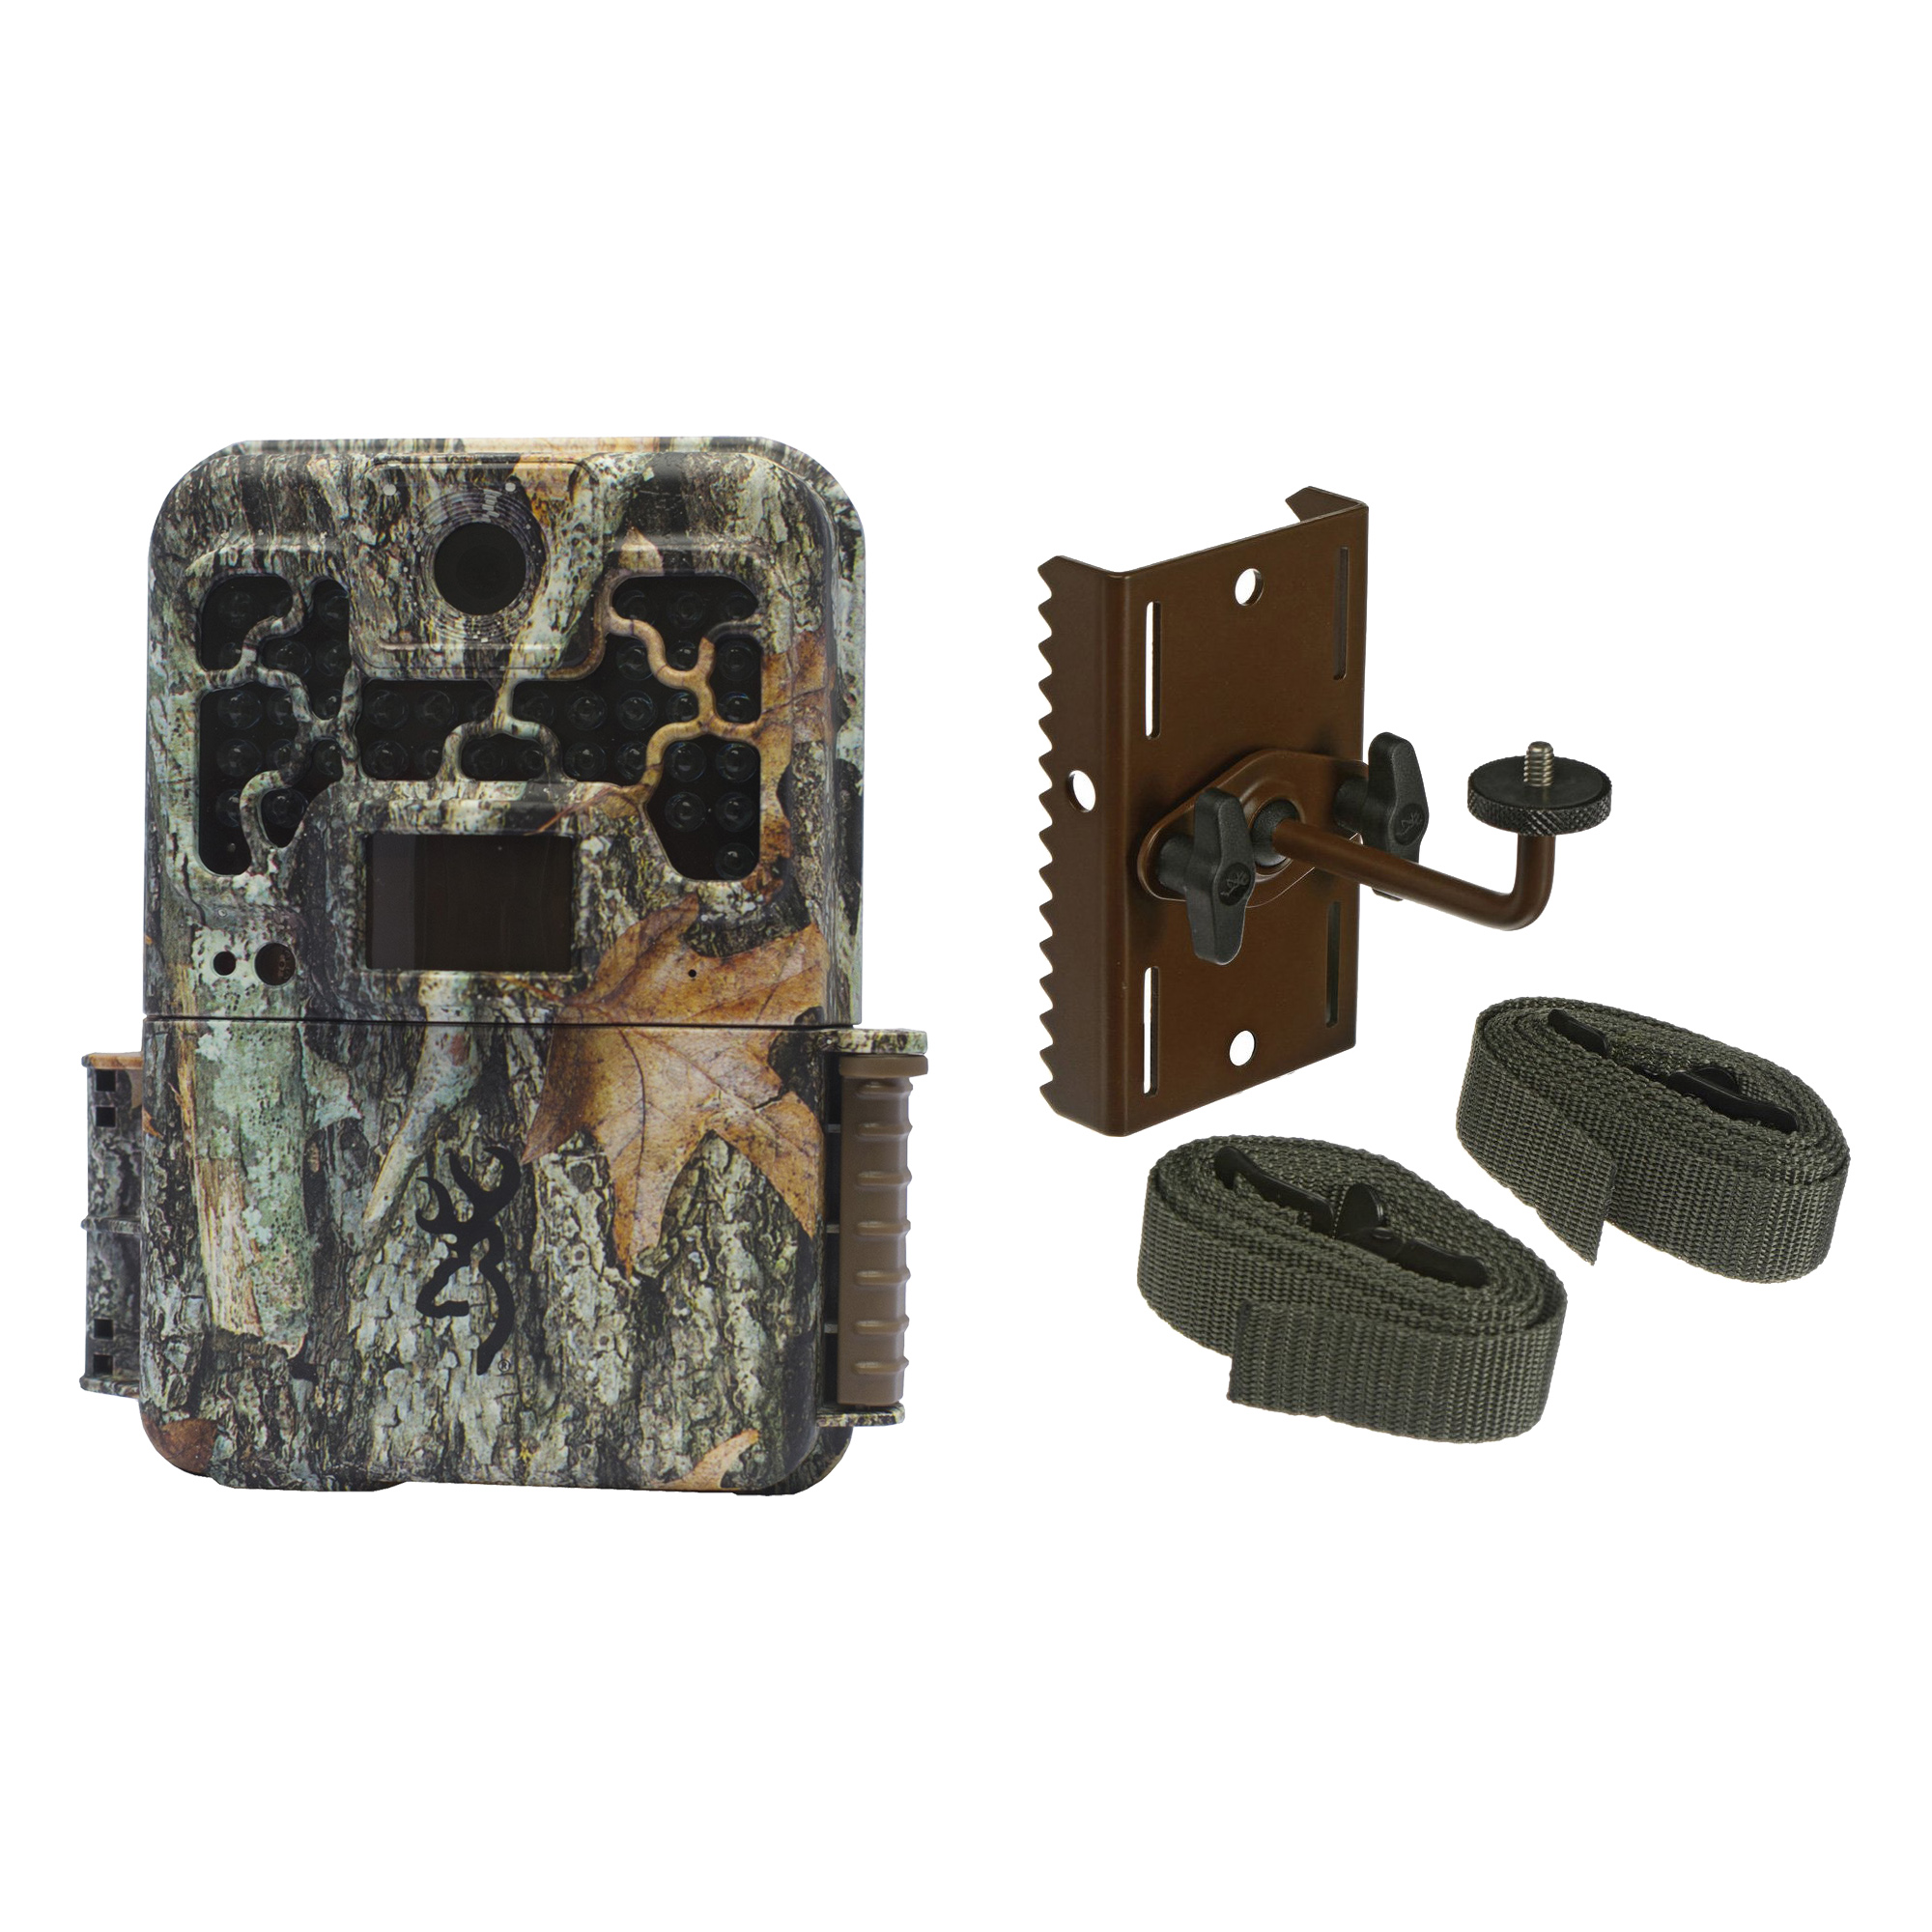 Browning Trail Cameras Recon Force FHD Extreme 20MP IR Game Camera + Tree Mount by Browning Trail Cameras